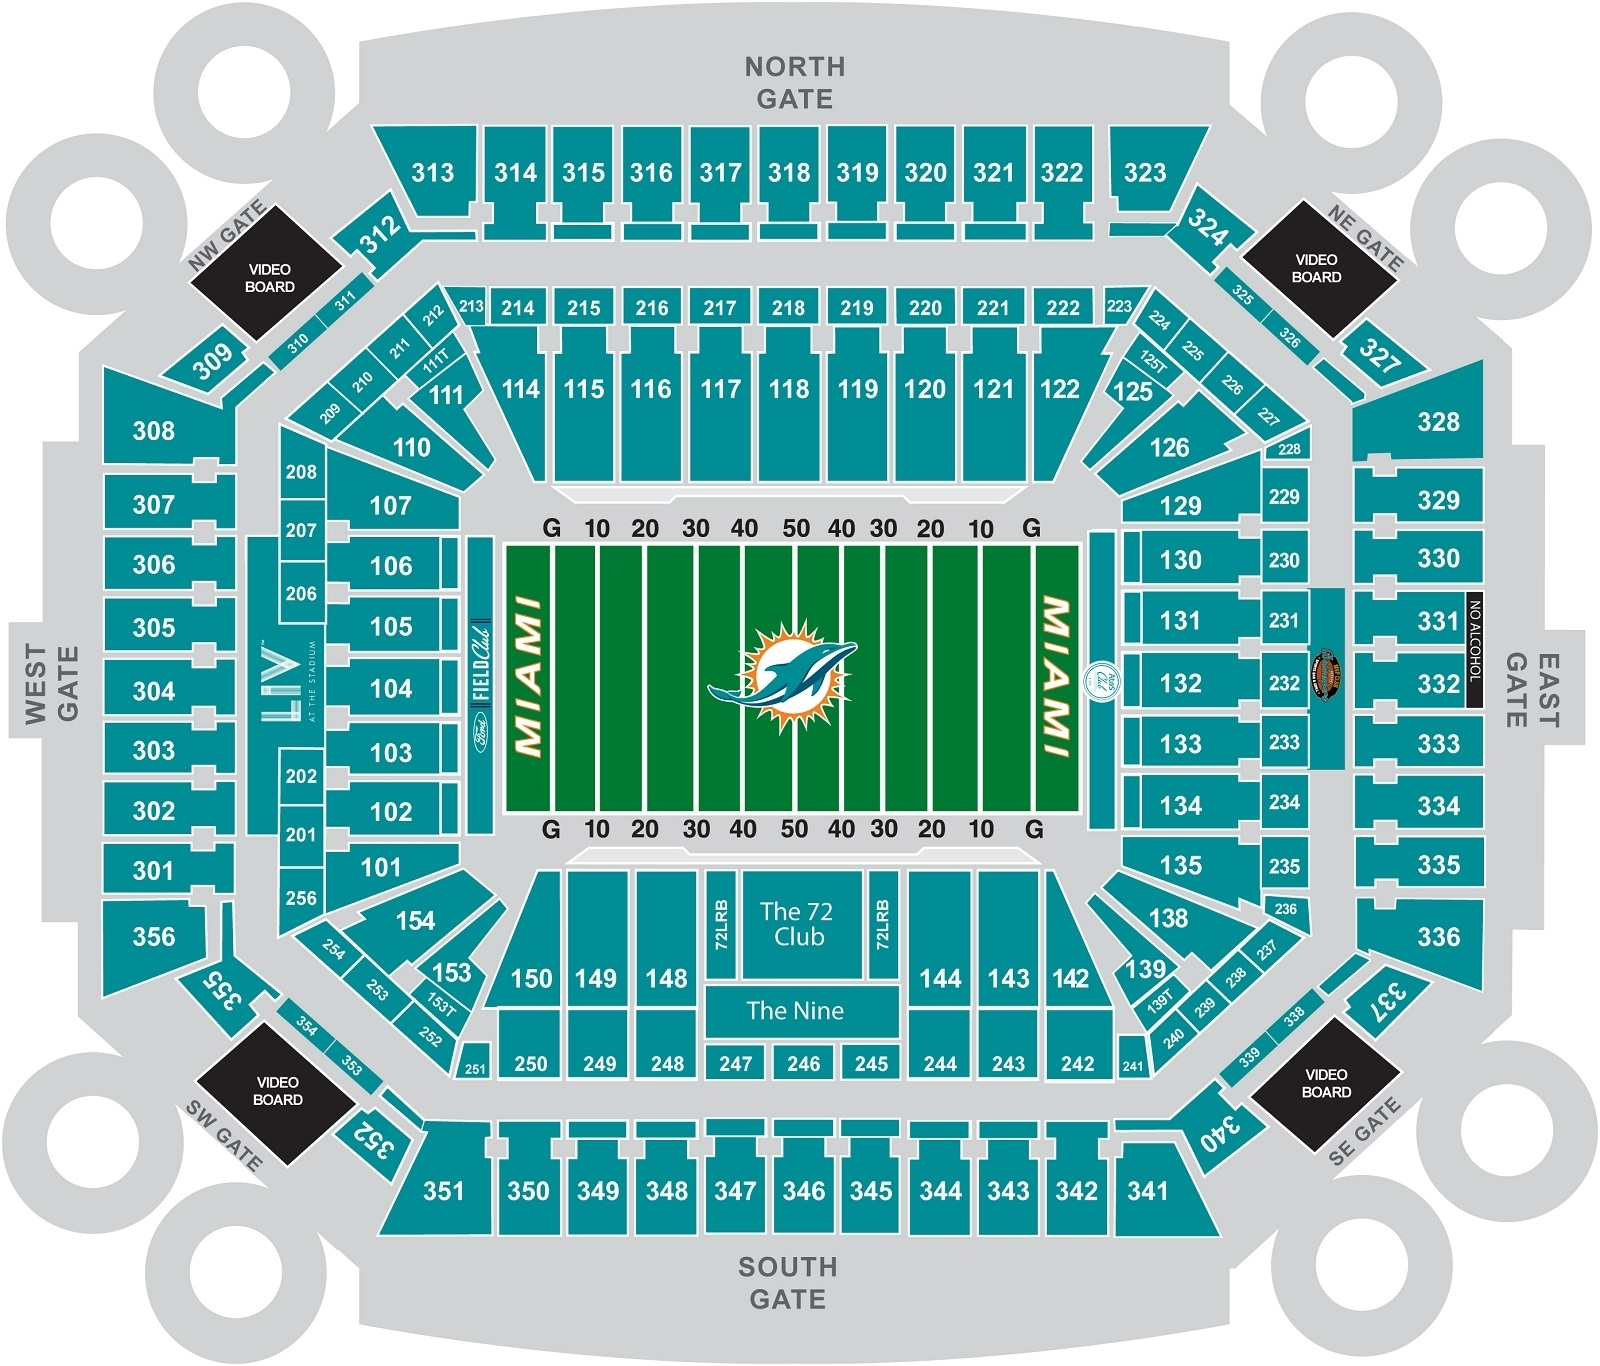 2020 Super Bowl Seating Chart | February 2, 2020 | Fan intended for Super Bowl Seating Chart Prices